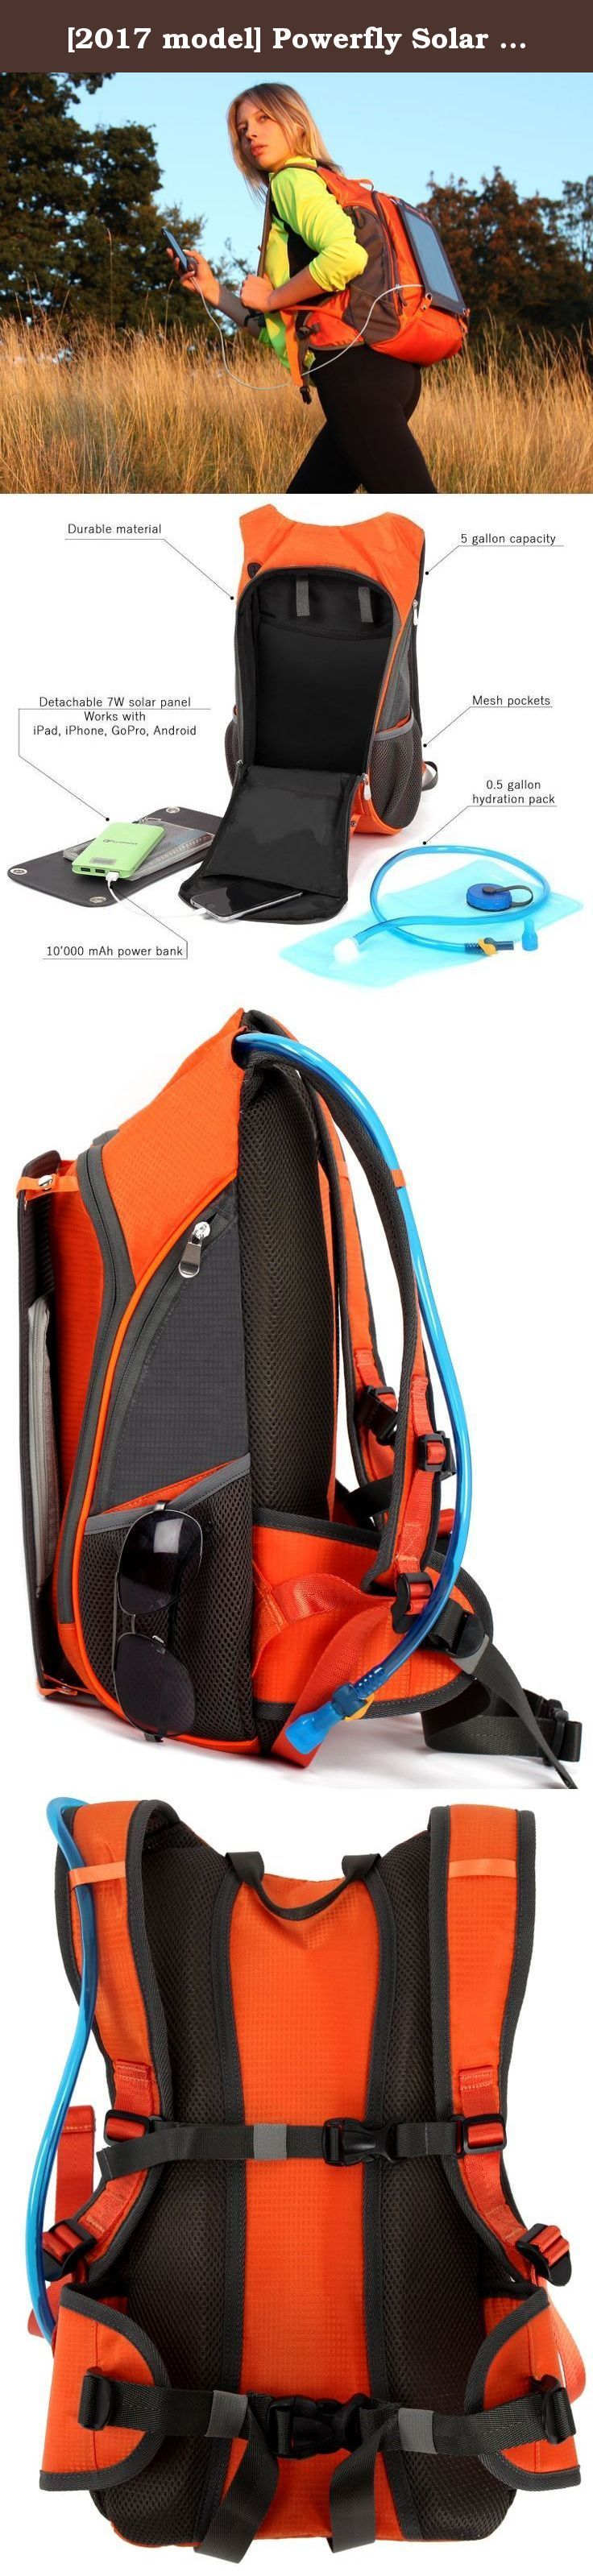 [2017 model] Powerfly Solar Powered Backpack with 10000mAh Power Bank, 7W Solar Panel & 2L Hydration Pack - Camping Hiking Portable Travel Sun Charger Kit for Smart Cell Phones Tablet Camera. Effortless energy on the go From Pokemon Go hunt to calling emergency rescue, it's important to stay connected on the go. The Powerfly Backpack goes wherever you do and quietly charges your devices whenever it's in the sun. This Powerfly daypack has a removable solar panel and a weatherproof power…